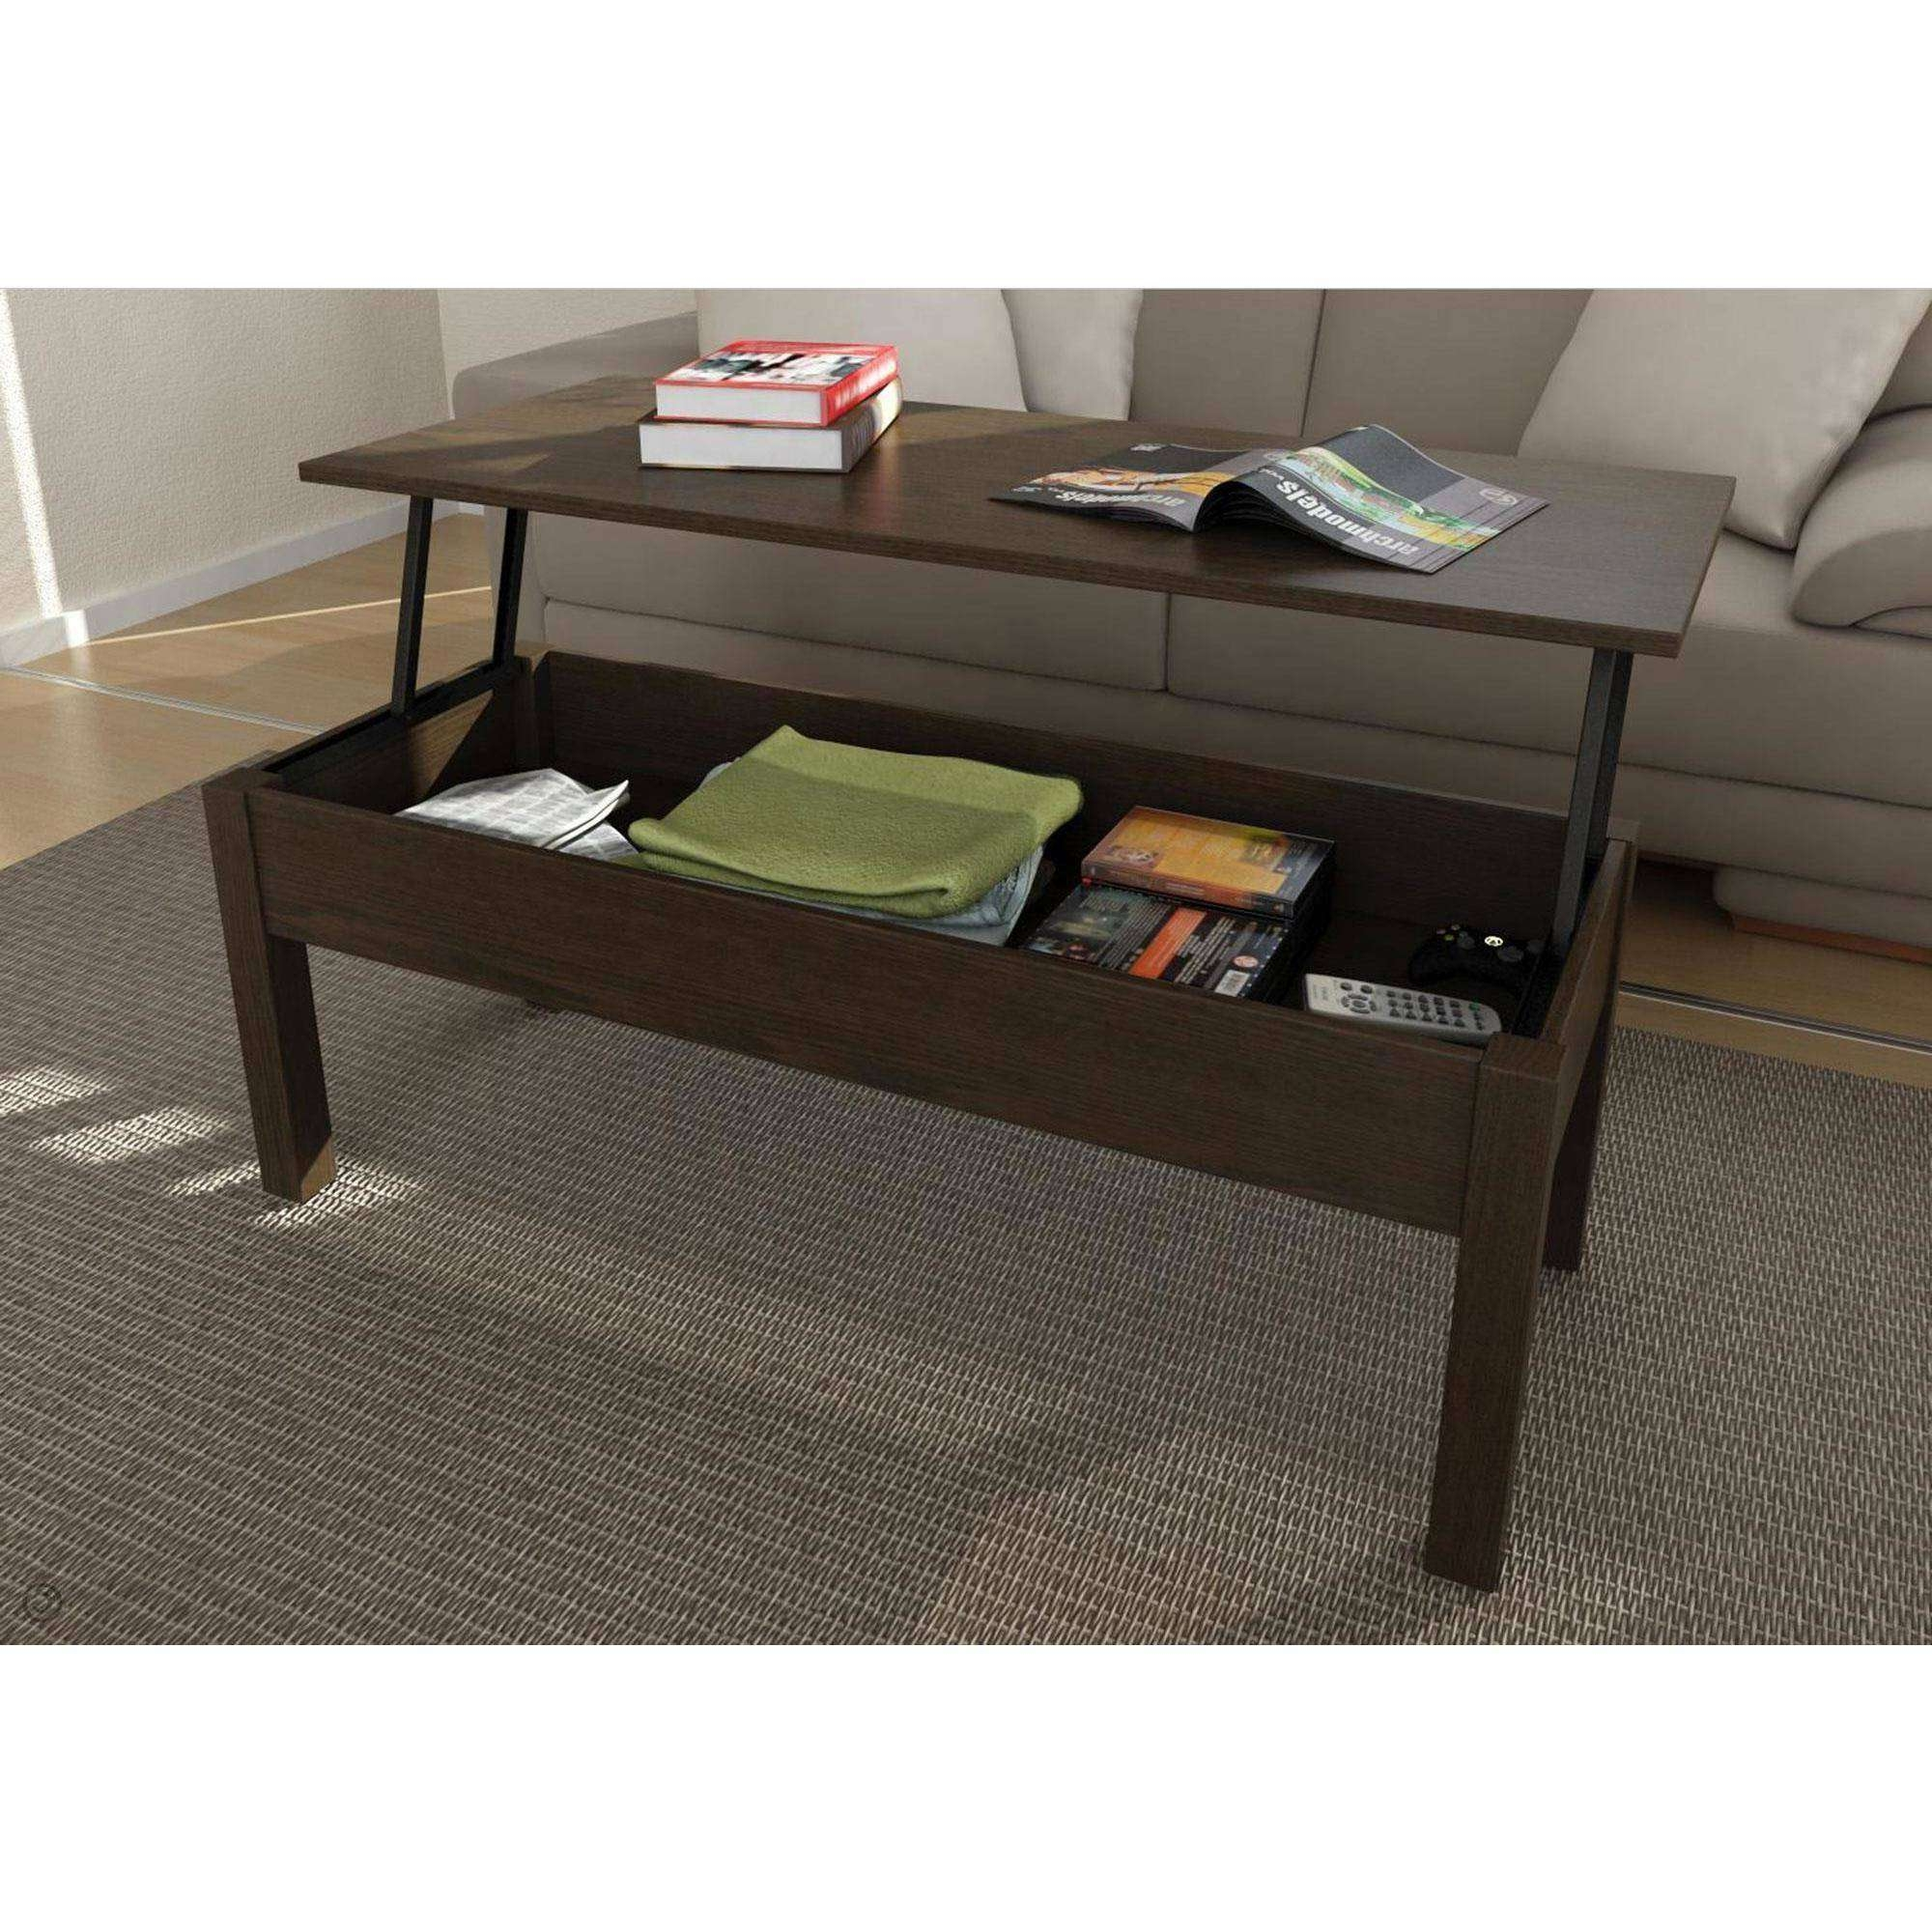 Coffee Table : Magnificent Coffee Table With Storage Retro Coffee Regarding Most Recently Released Cheap Lift Top Coffee Tables (View 4 of 20)